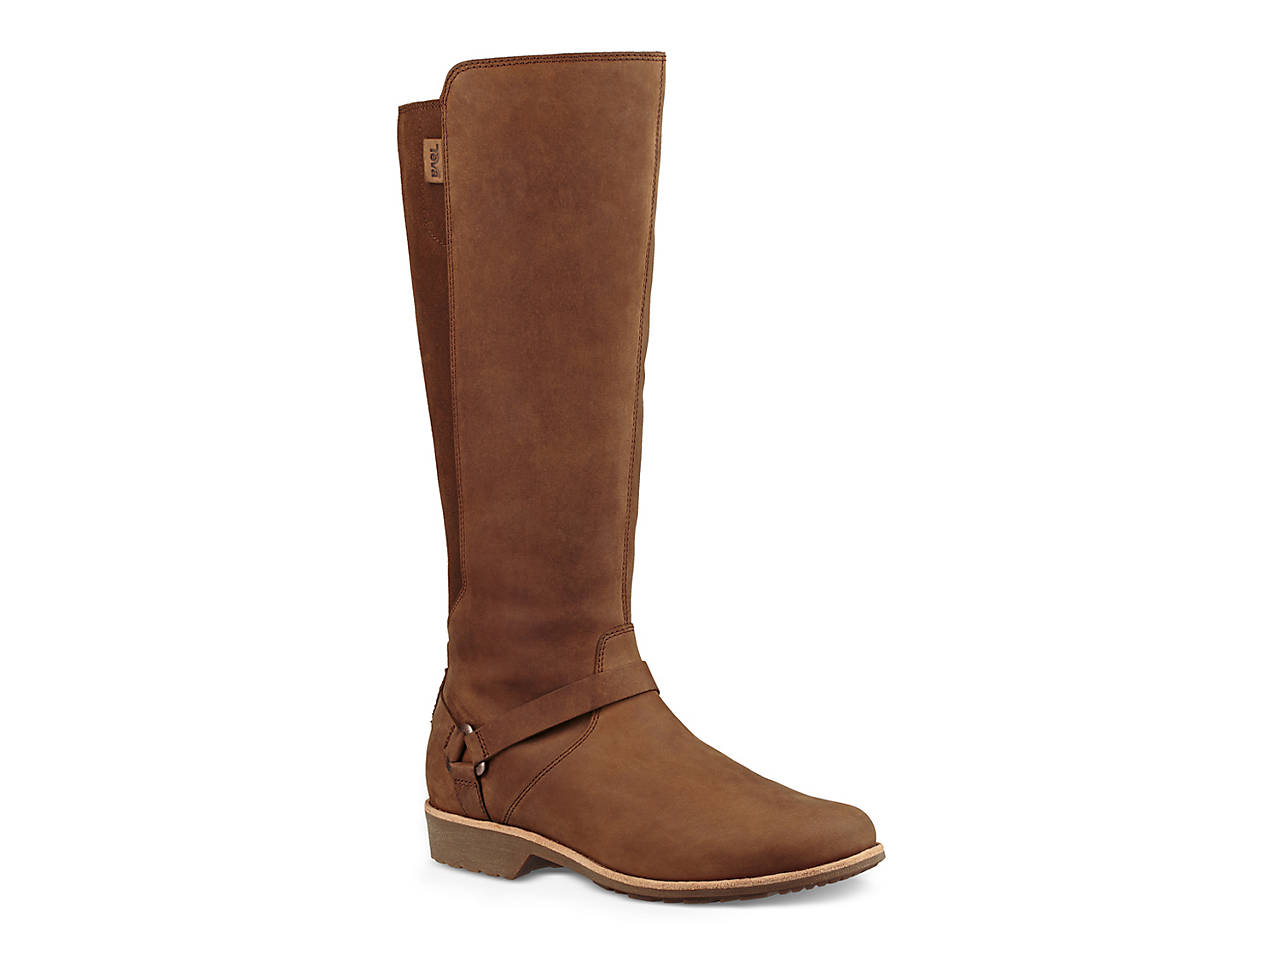 cdfa00dbd94b Teva De La Vina Dos Wide Calf Riding Boot Women s Shoes